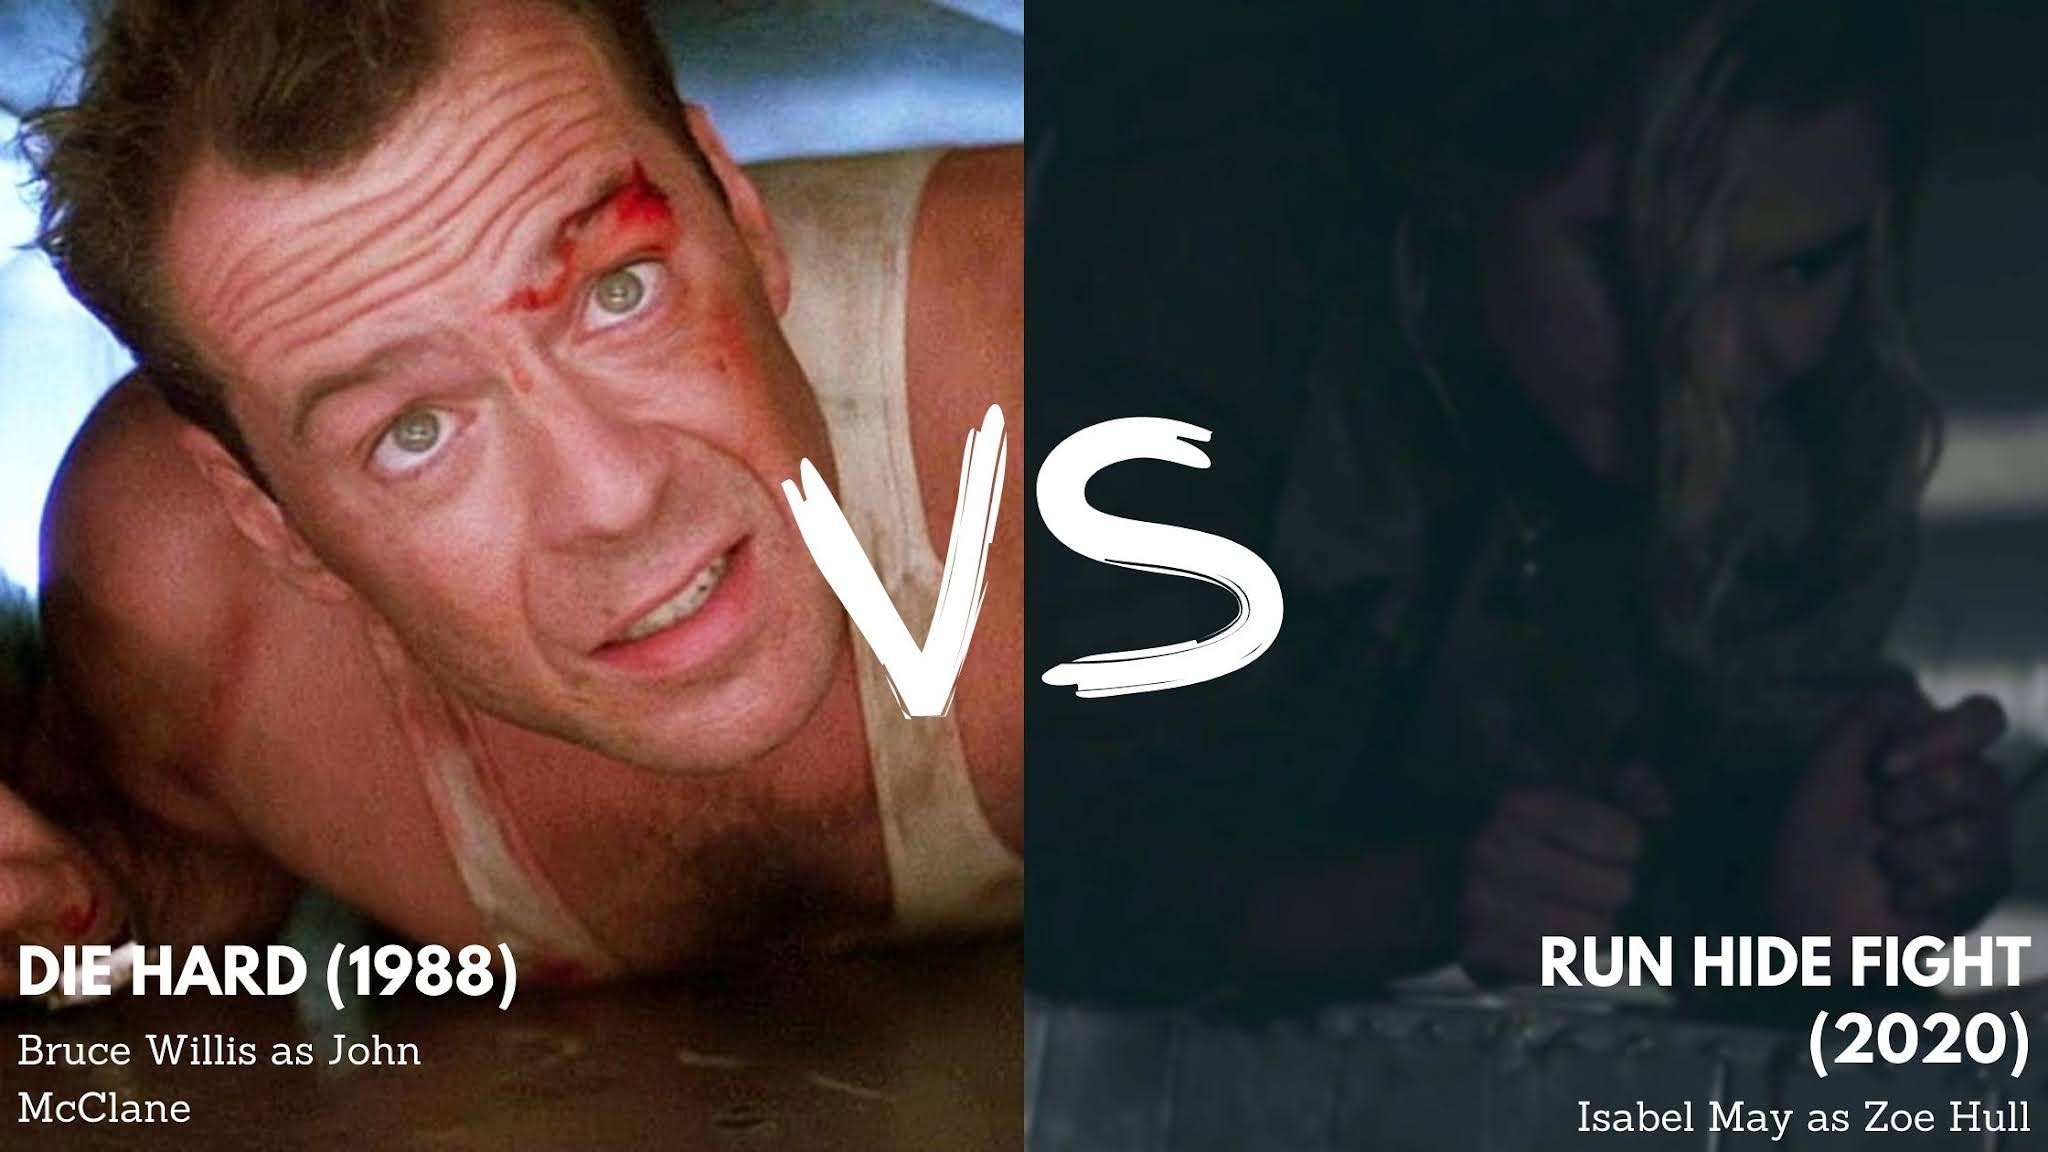 image comparing die hard and run hide fight by showing the main characters of both films crawling in a vent